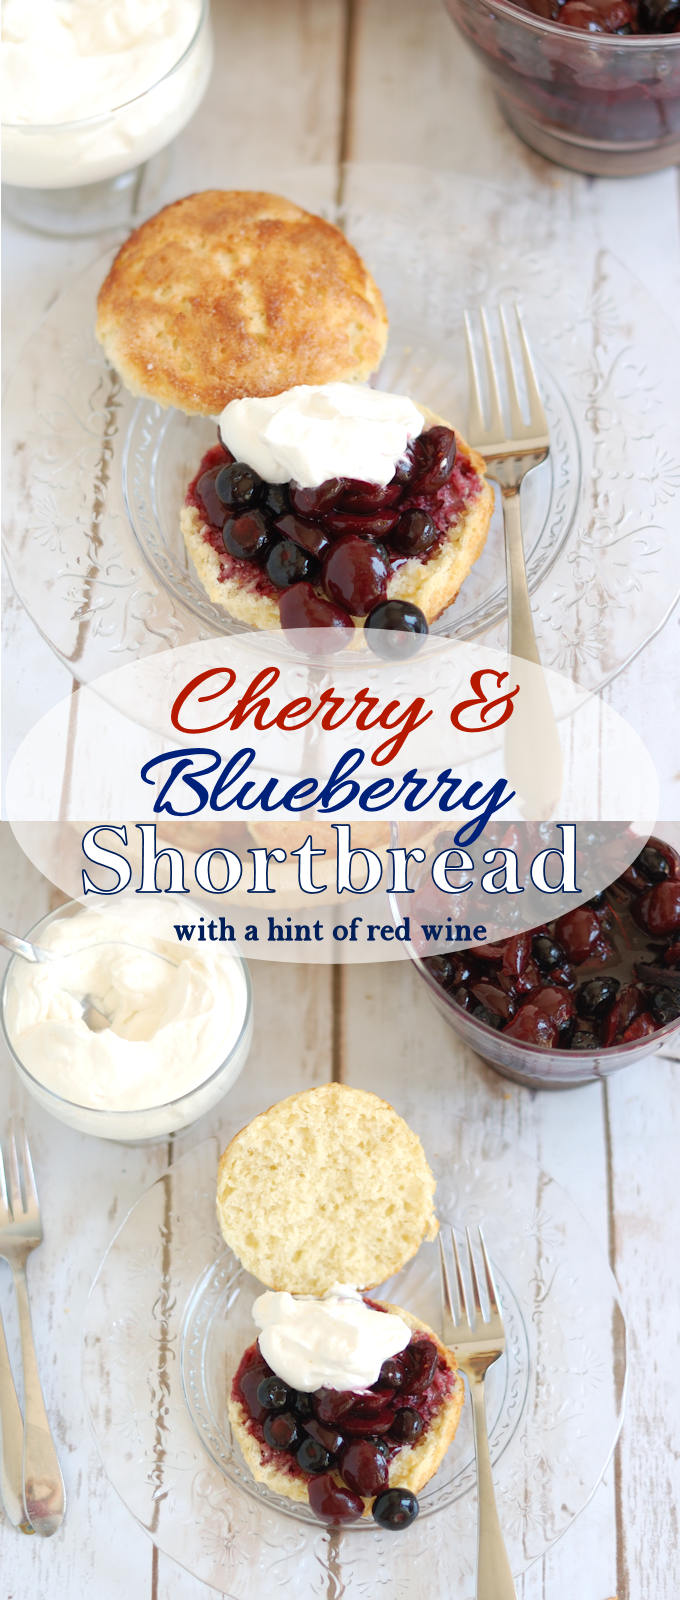 Celebrate the red, white & blue with luscious shortcakes with summer berries. #SundaySupper